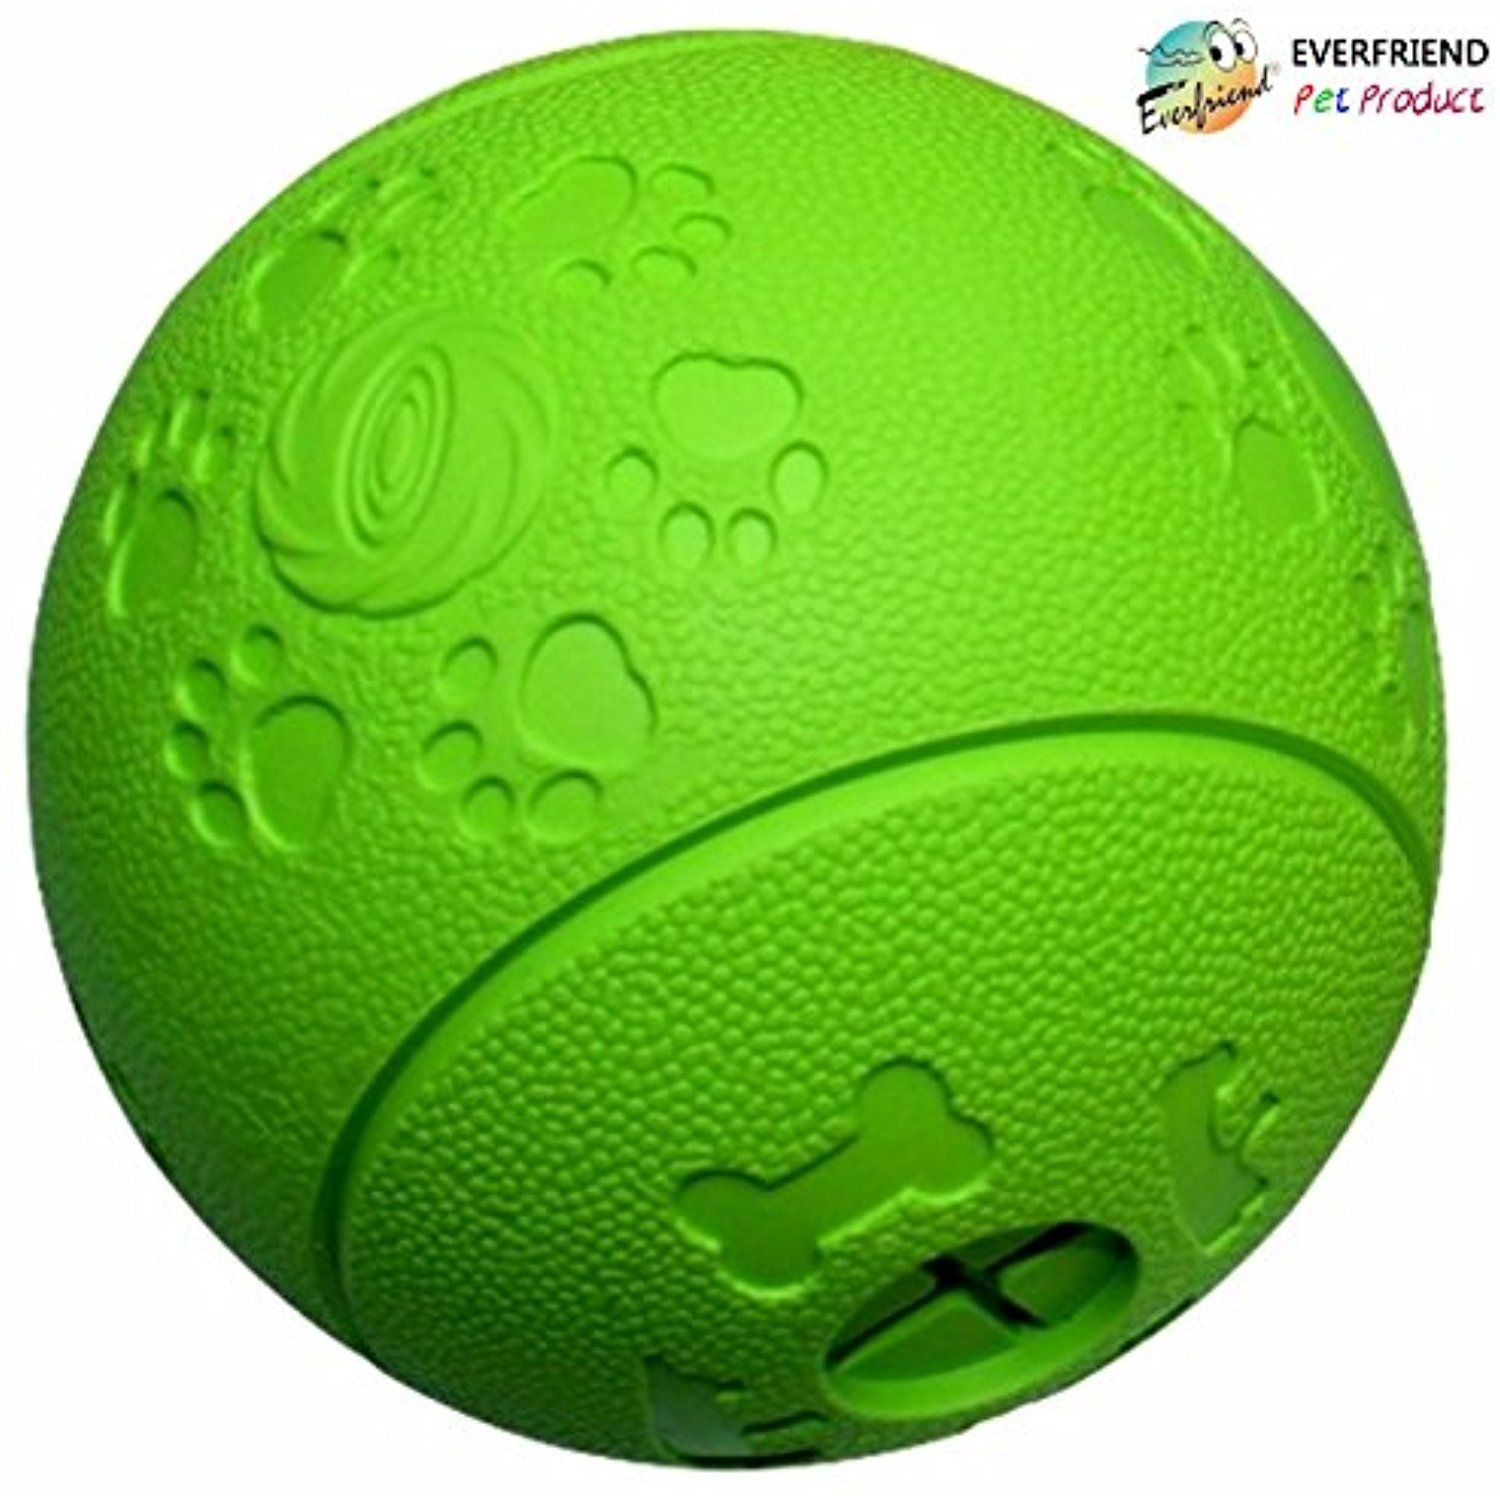 Everfriend Interactive Soft Rubber Toy Ball For Dogs Puppies